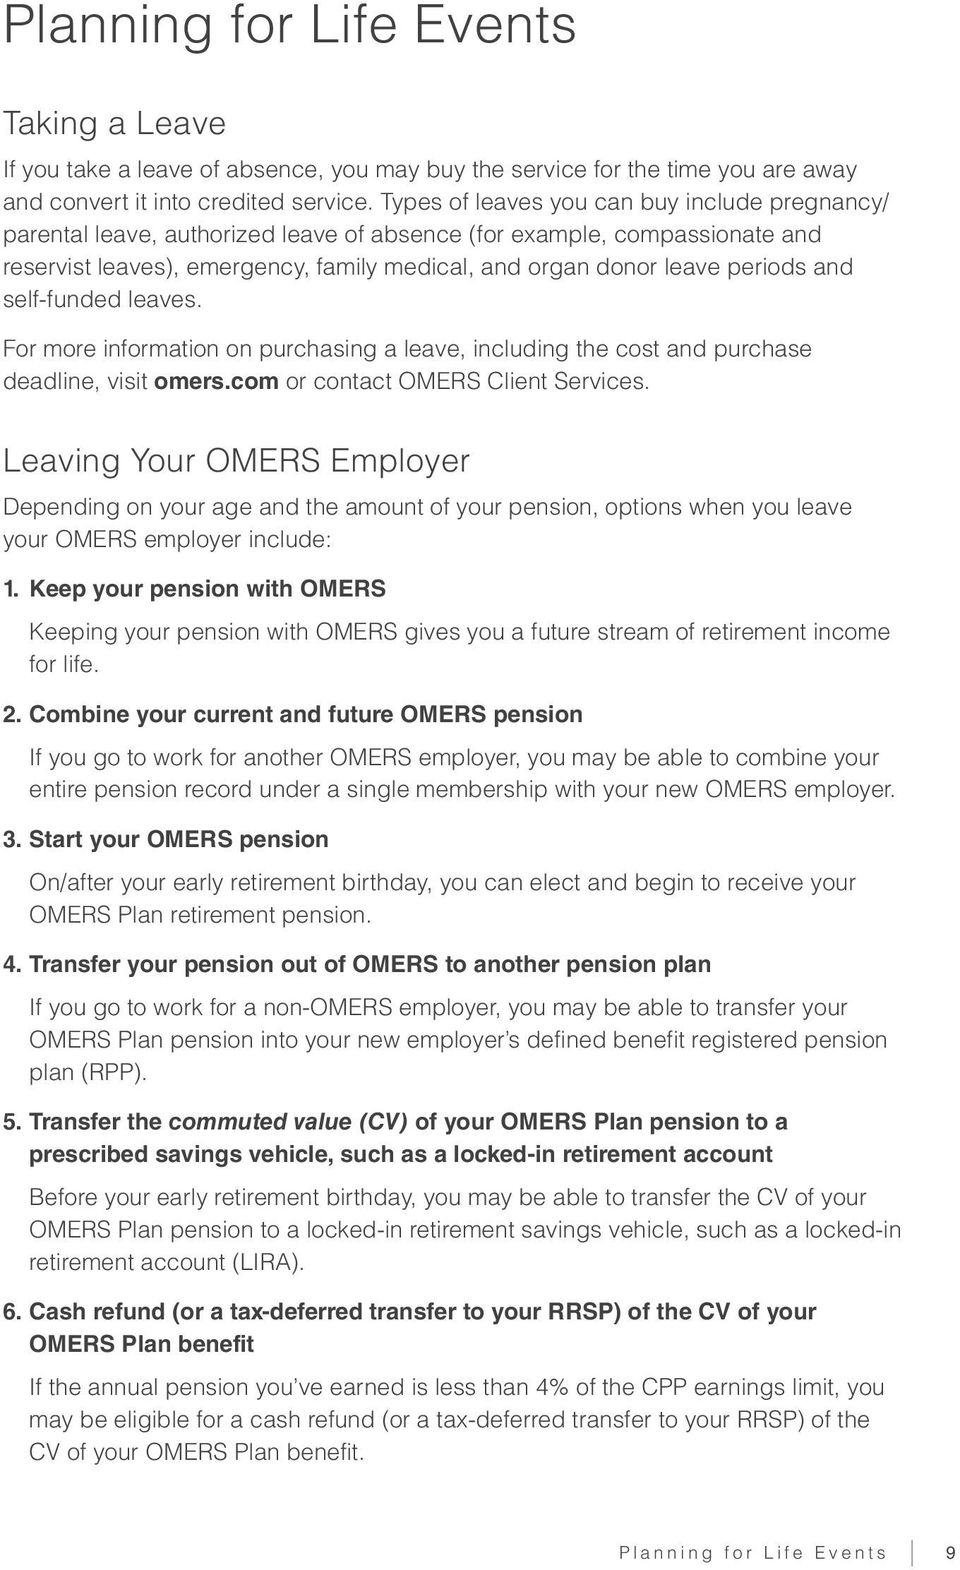 and self-funded leaves. For more information on purchasing a leave, including the cost and purchase deadline, visit omers.com or contact OMERS Client Services.